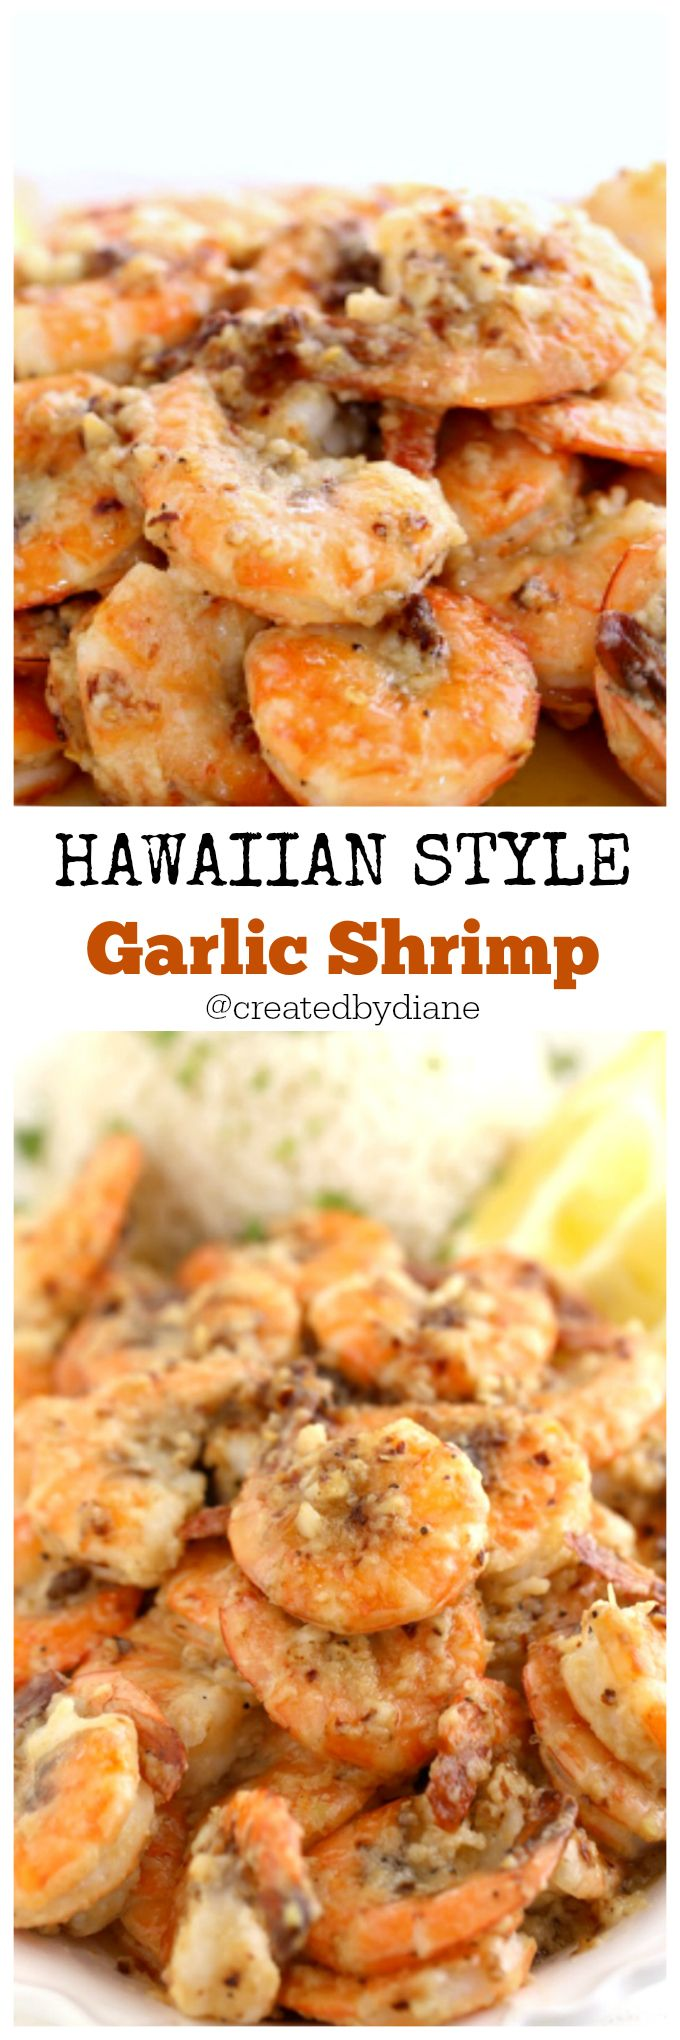 Shrimp on the grill is a real temptation